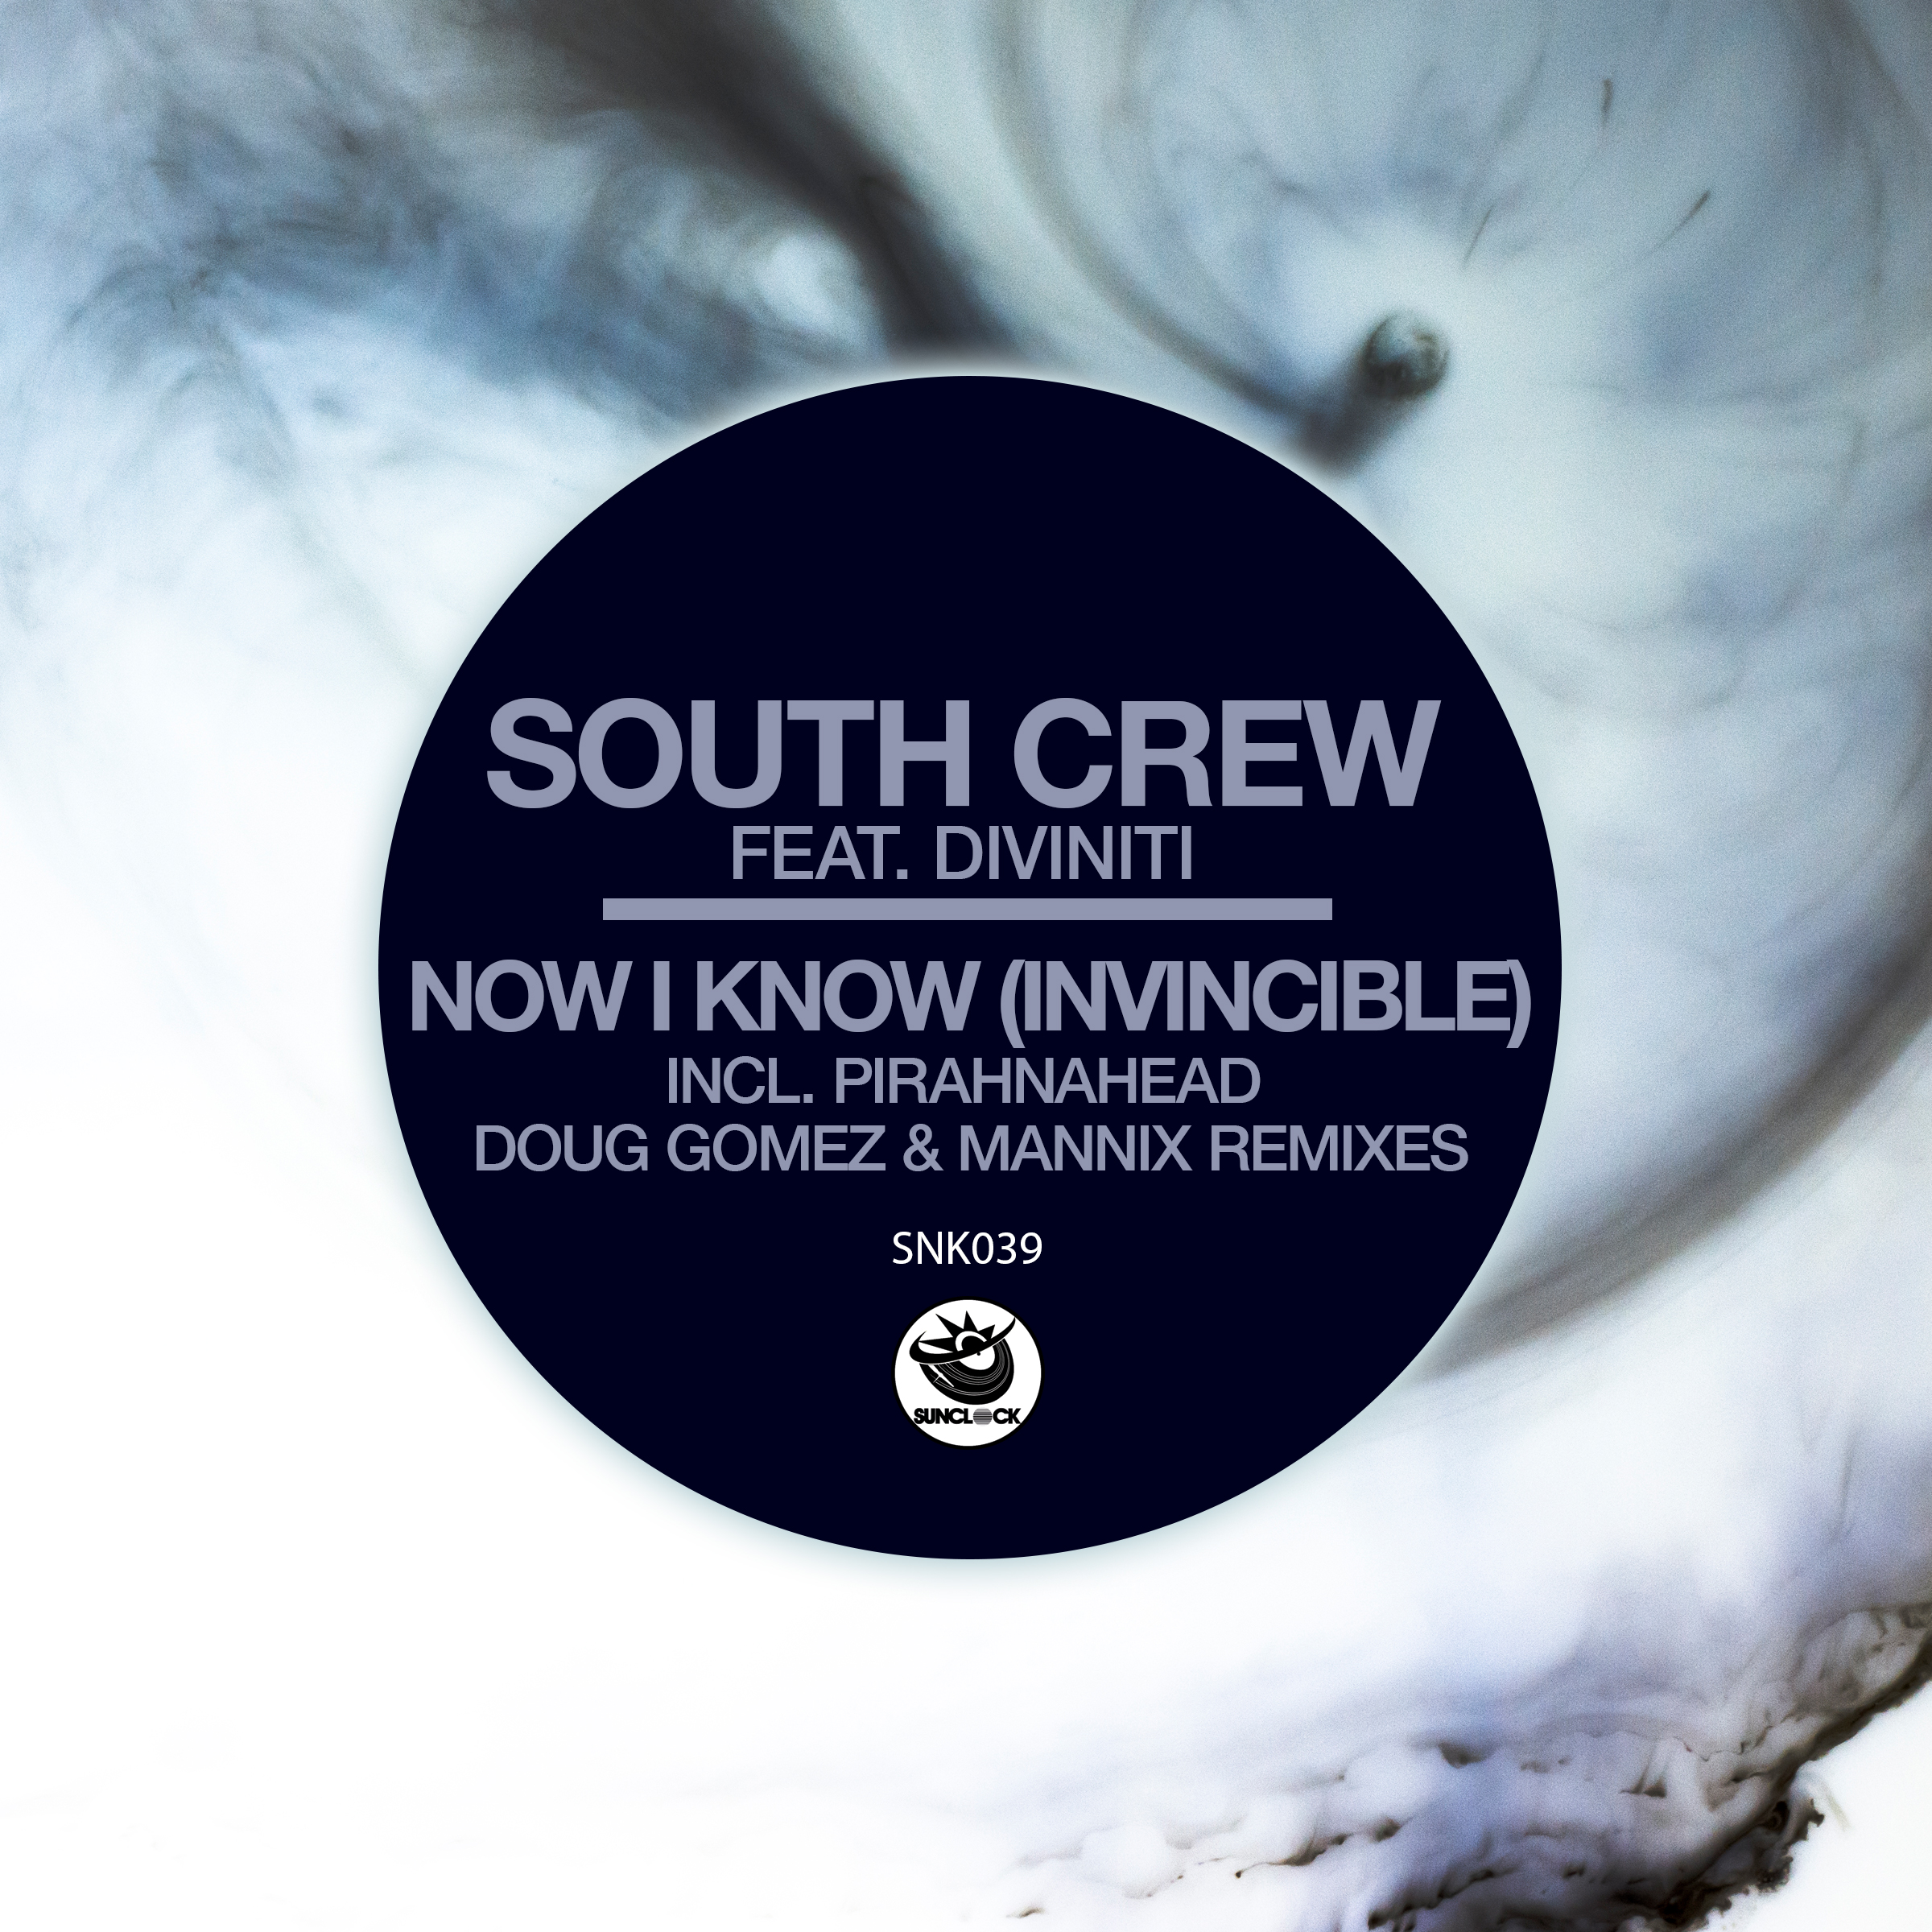 South Crew feat. Diviniti - Now I Know (Invincible) (incl. Piranhahead, Doug Gomez & Mannix Remixes) - SNK039 Cover